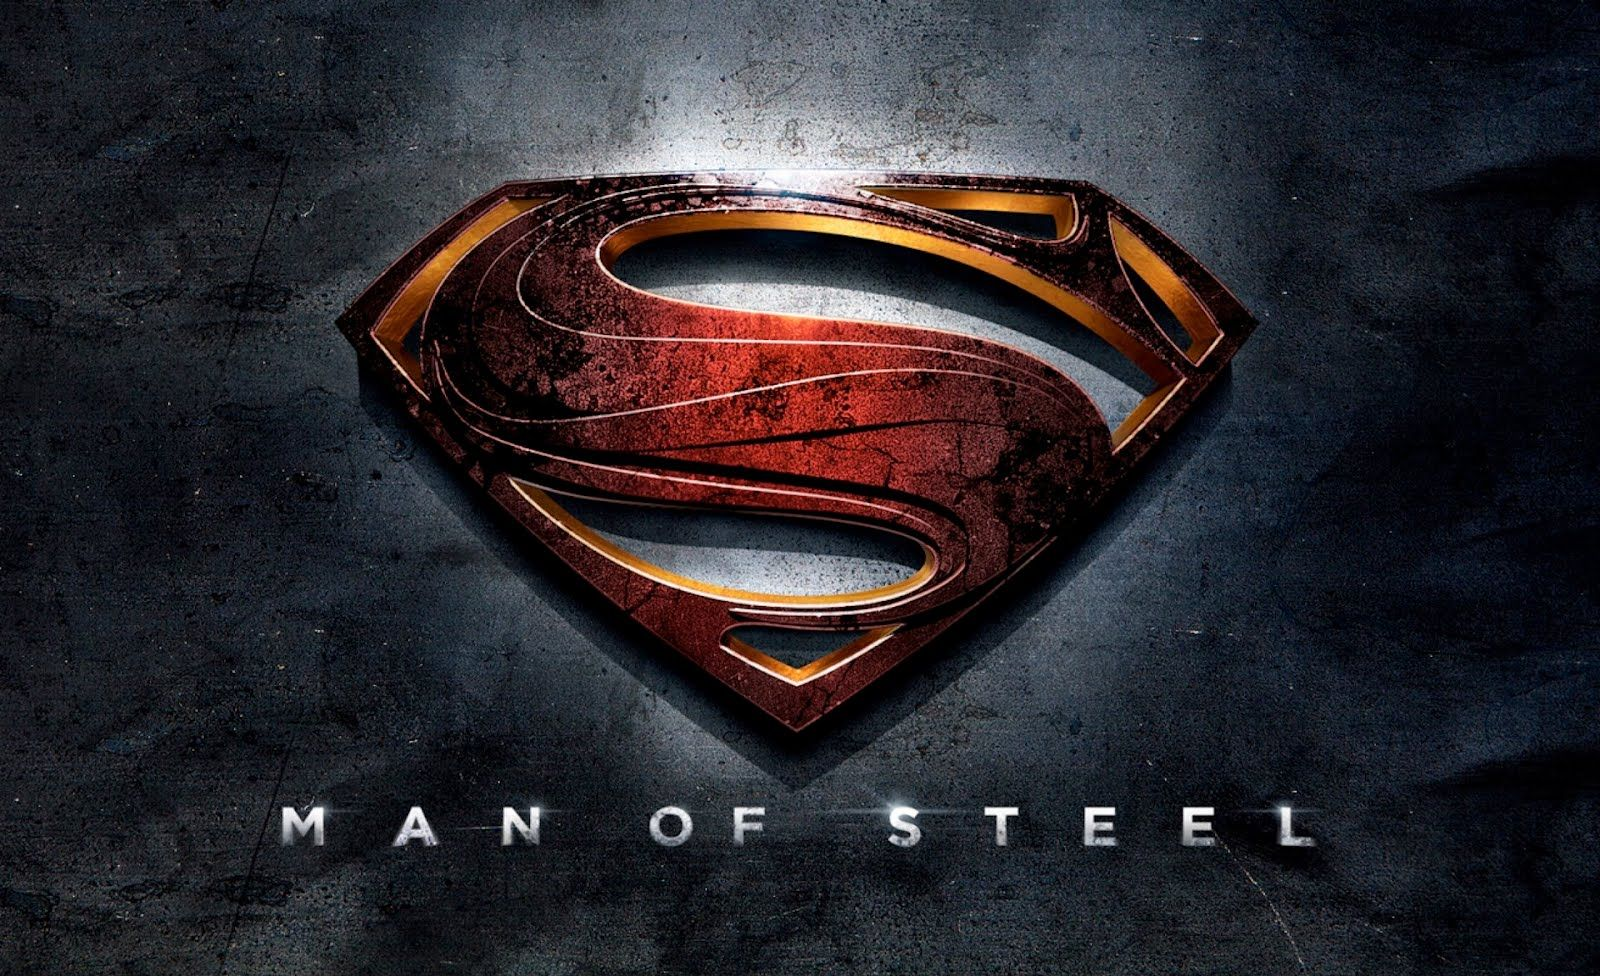 Undefined Cool Wallpaper For Iphone 40 Wallpapers: Undefined Wallpaper Superman (41 Wallpapers)